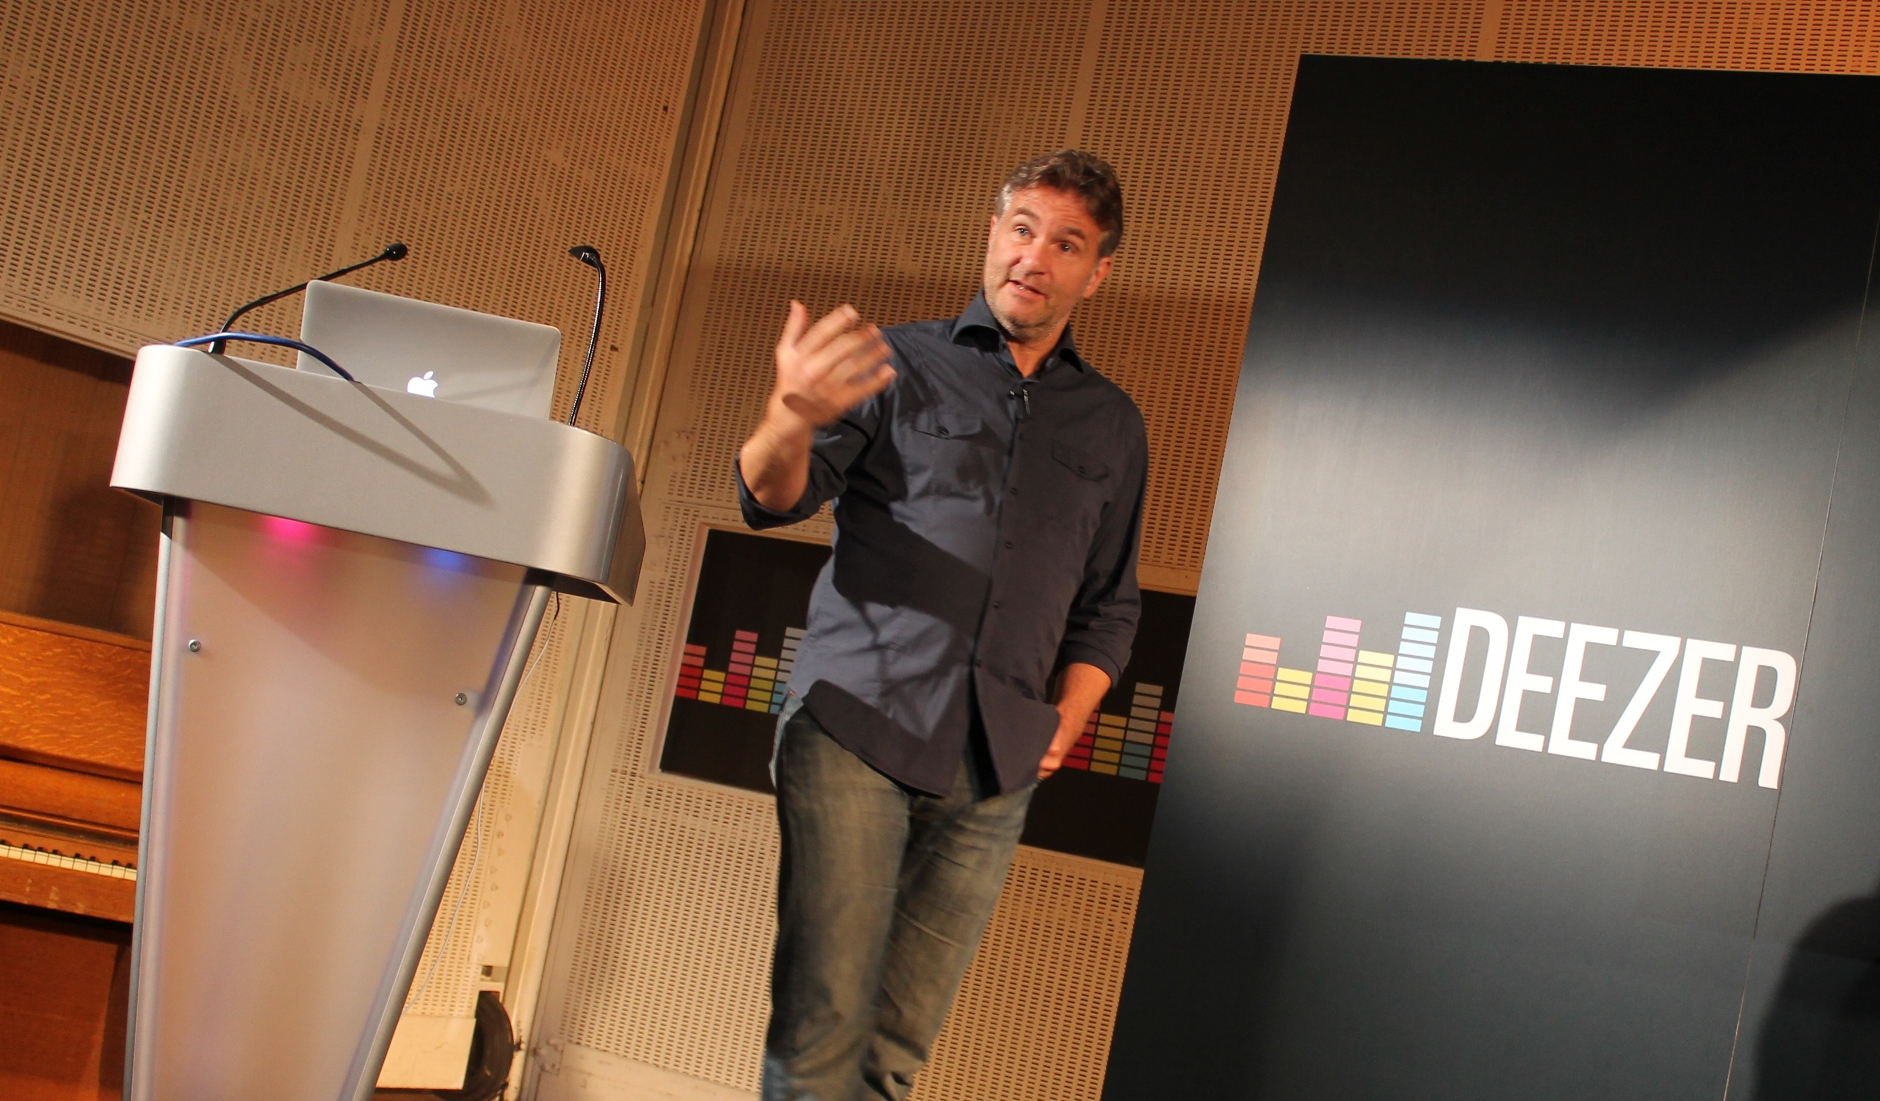 Deezer CEO Axel Dauchez on why the company WILL launch in the US when the time's right [Video]